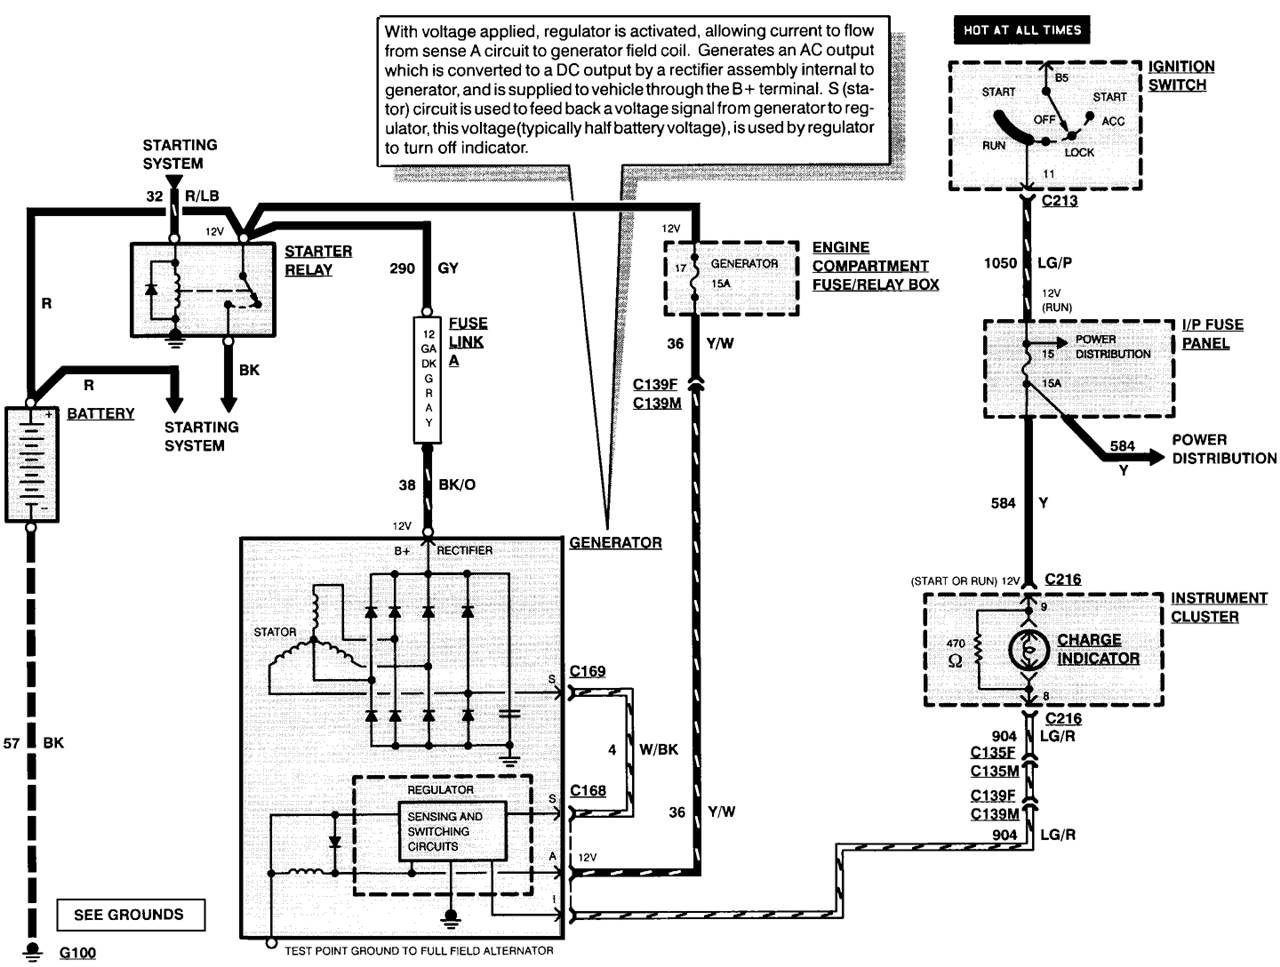 Ford alternator wiring diagram internal regulator?resized665%2C502 charging system wiring diagram dual battery charging system wiring lt1 alternator wiring diagram at gsmportal.co